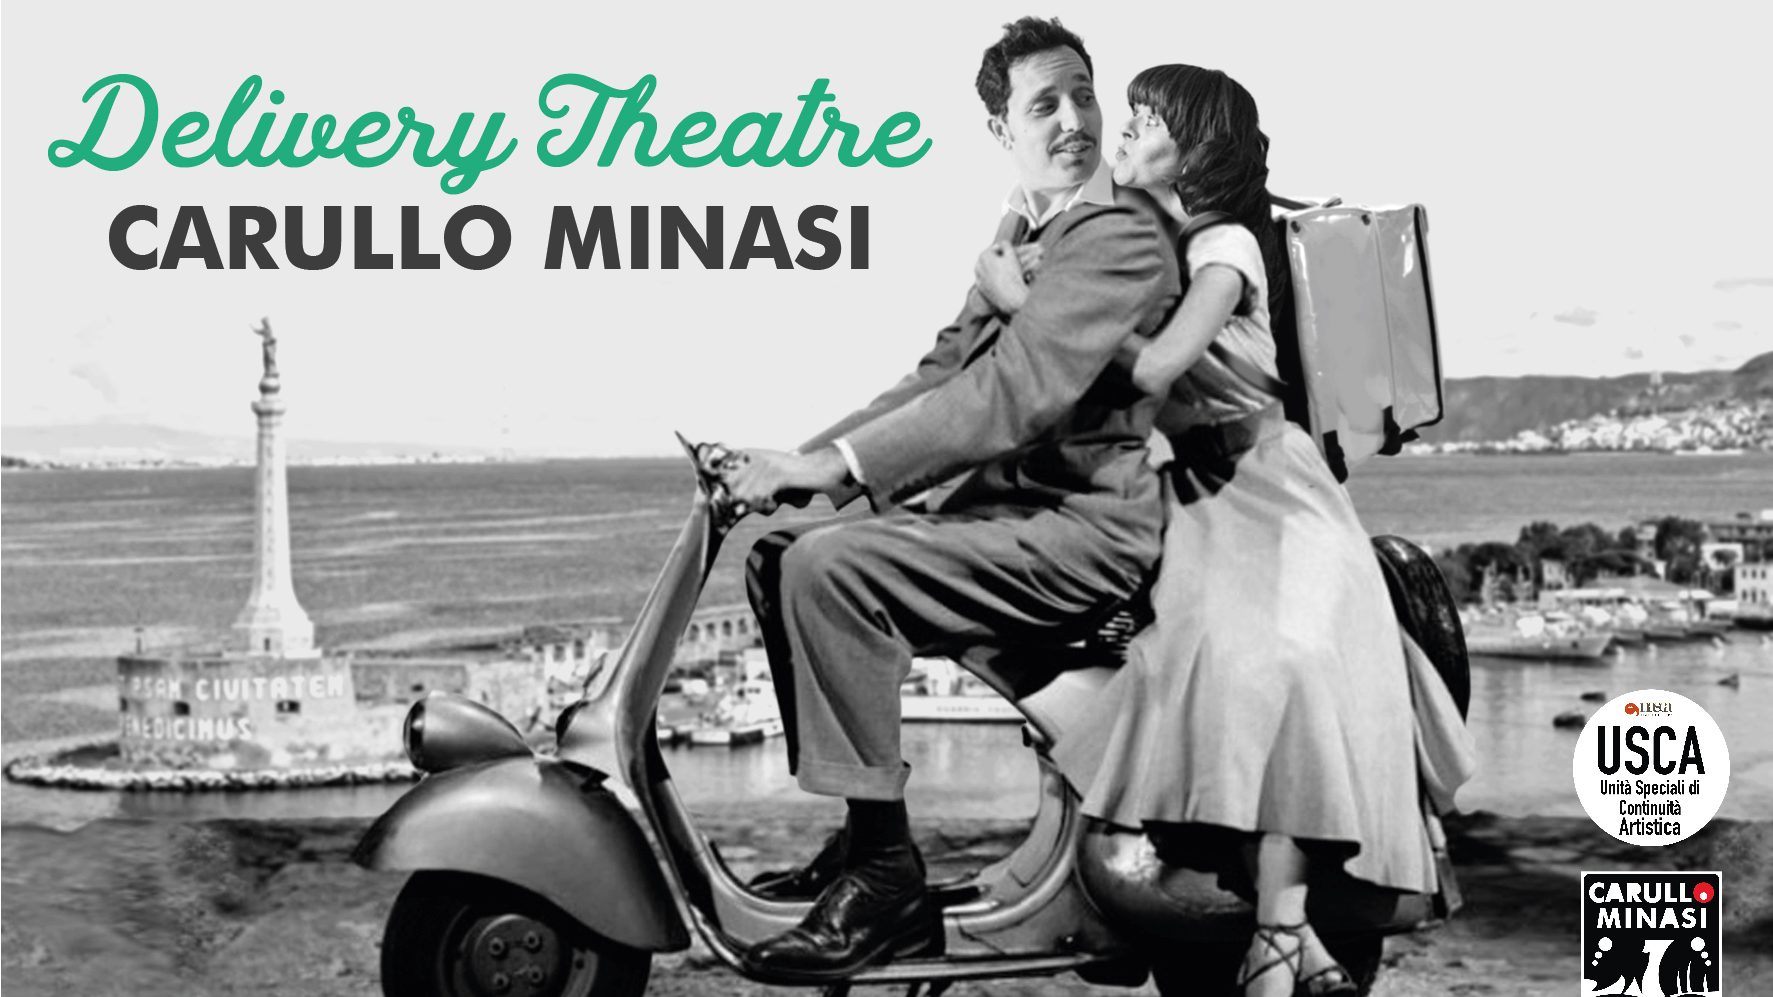 delivery Theatre Carullo-Minasi: teatro a domicilio a messina